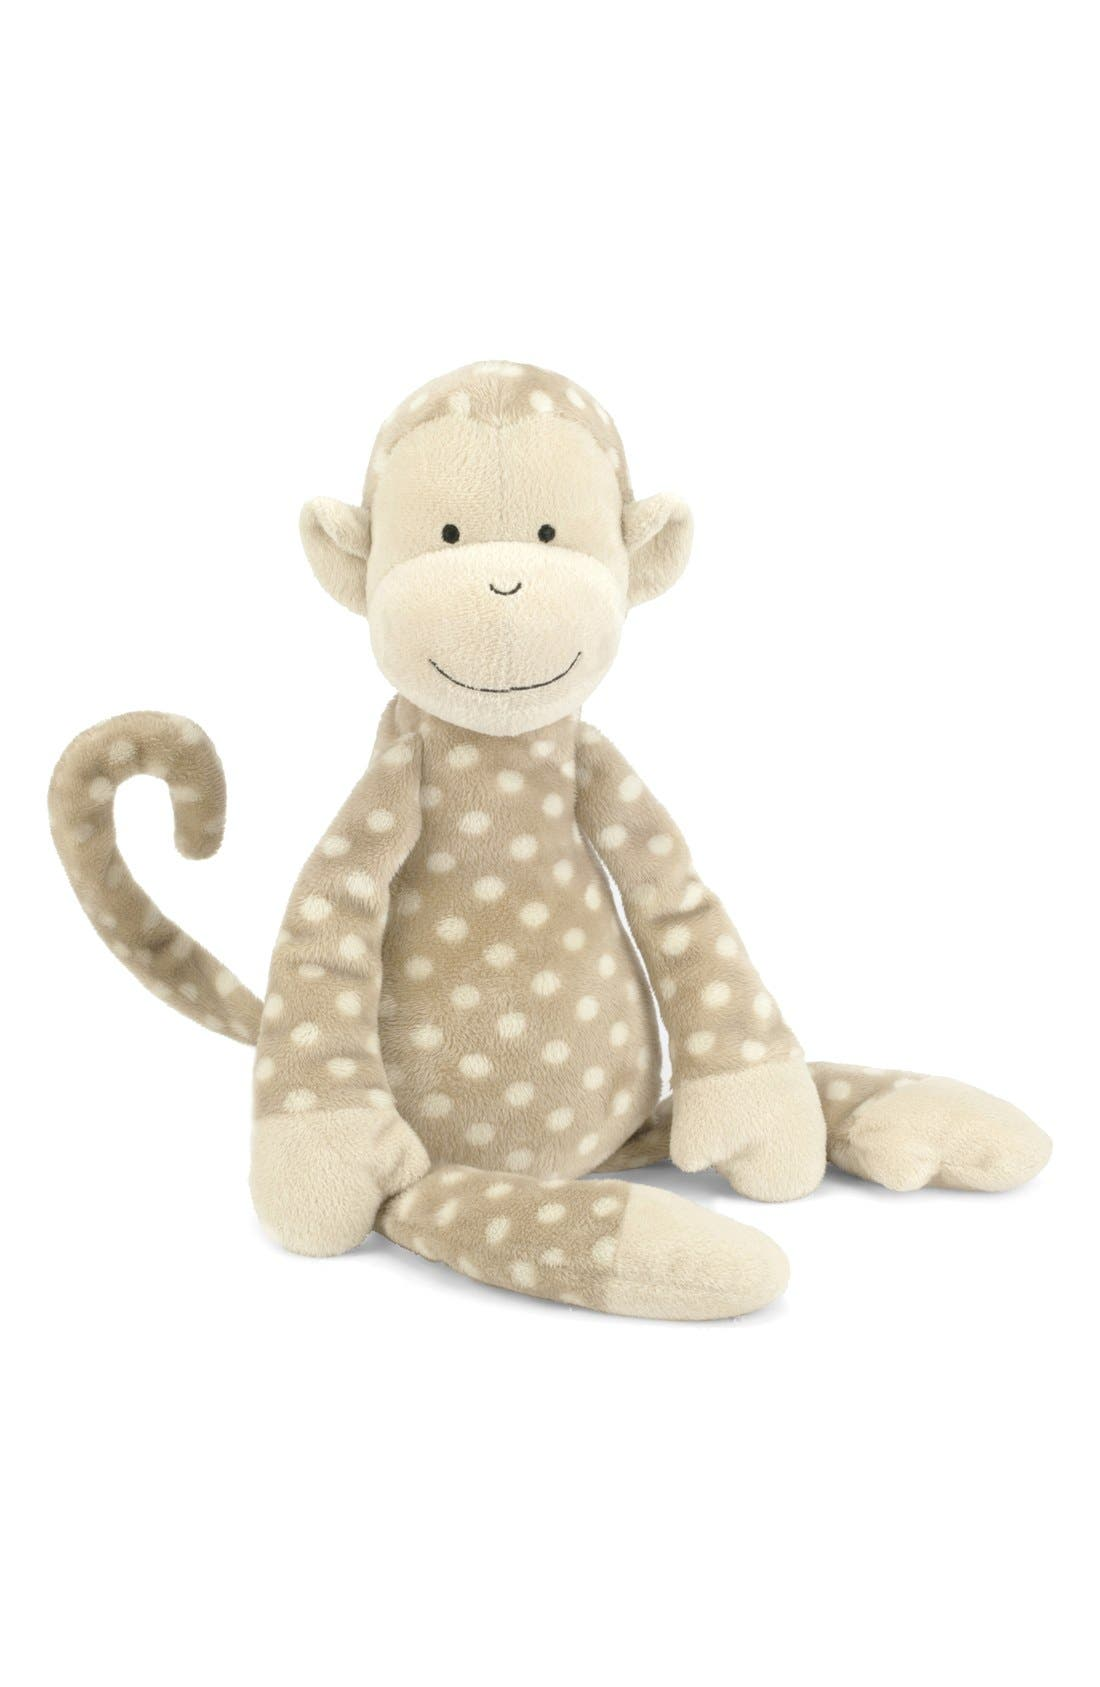 'Monty Monkey' Stuffed Animal,                             Main thumbnail 1, color,                             Brown/ Cream